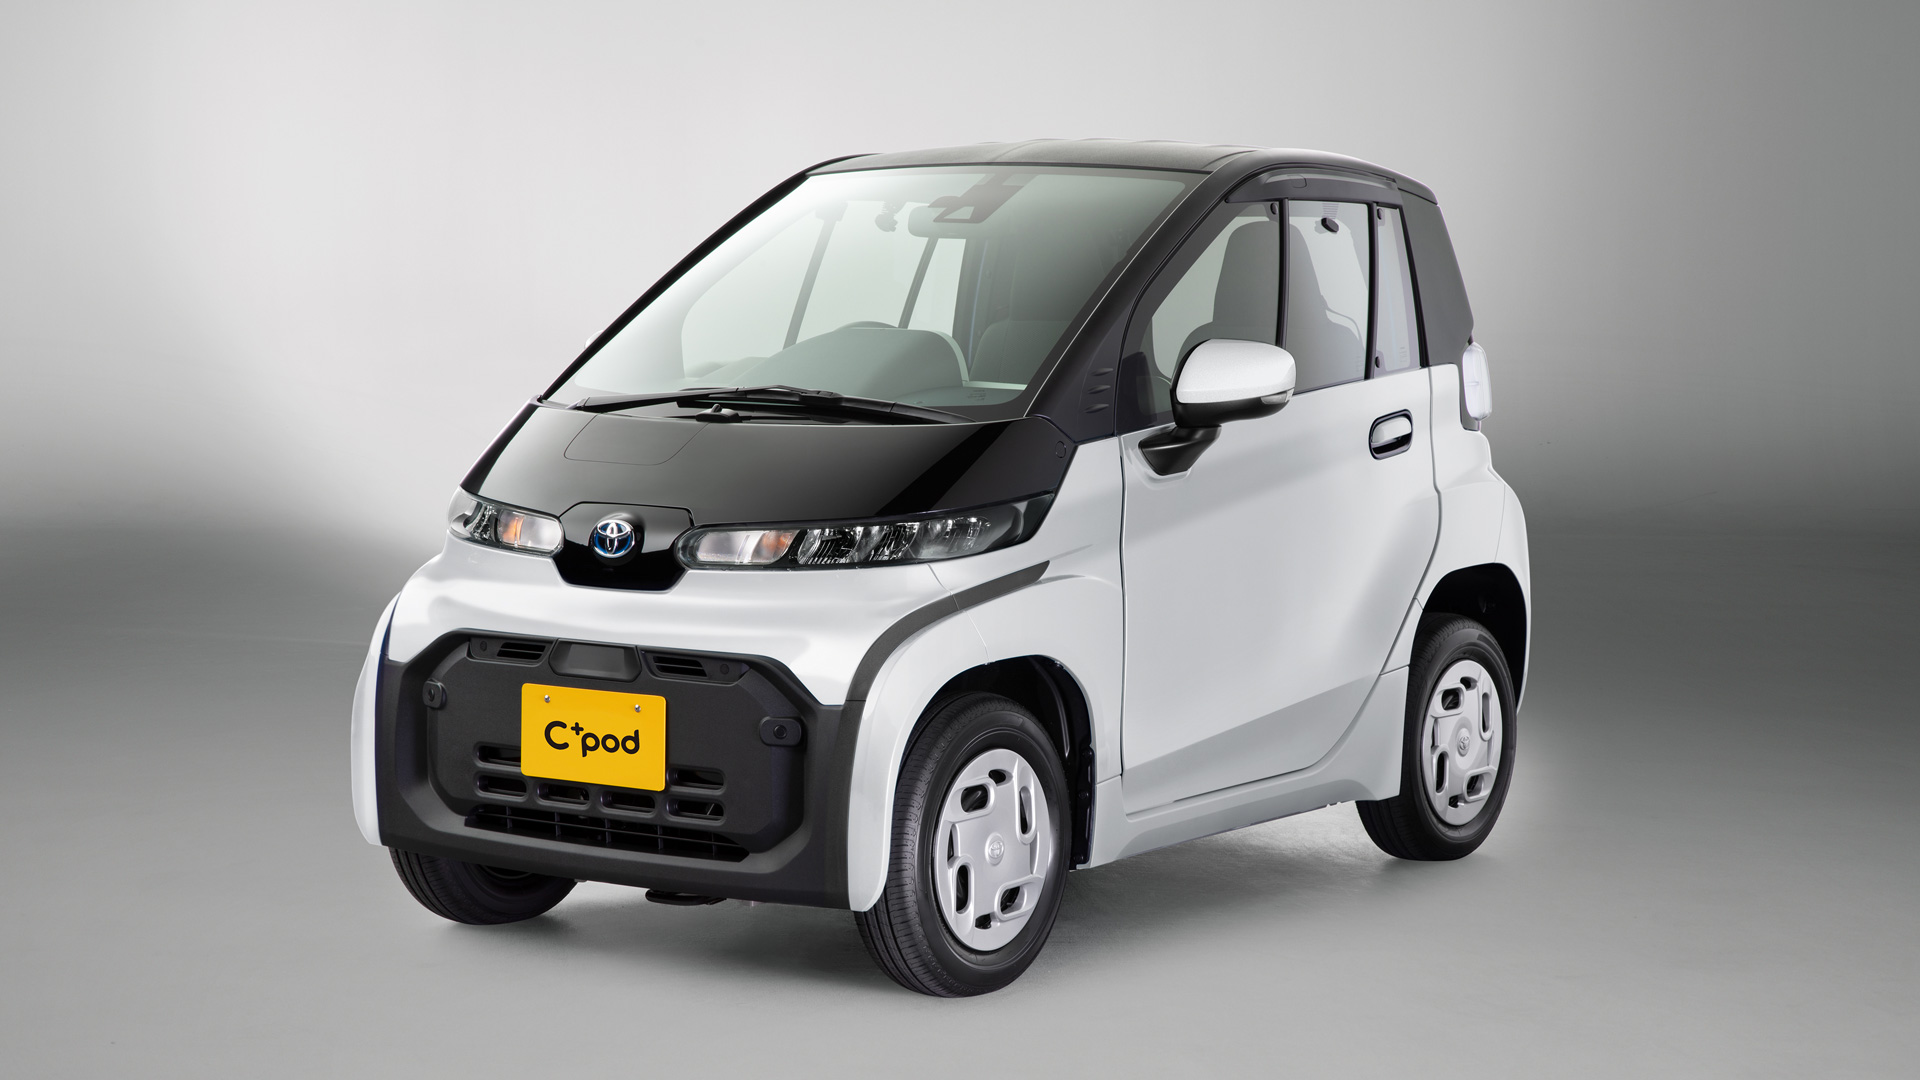 """Toyota Launches """"C+pod"""" Ultra-Compact Battery Electric Vehicle in JapanAn environmentally-friendly two-seater BEV that expands the freedom of movement - Image 7"""